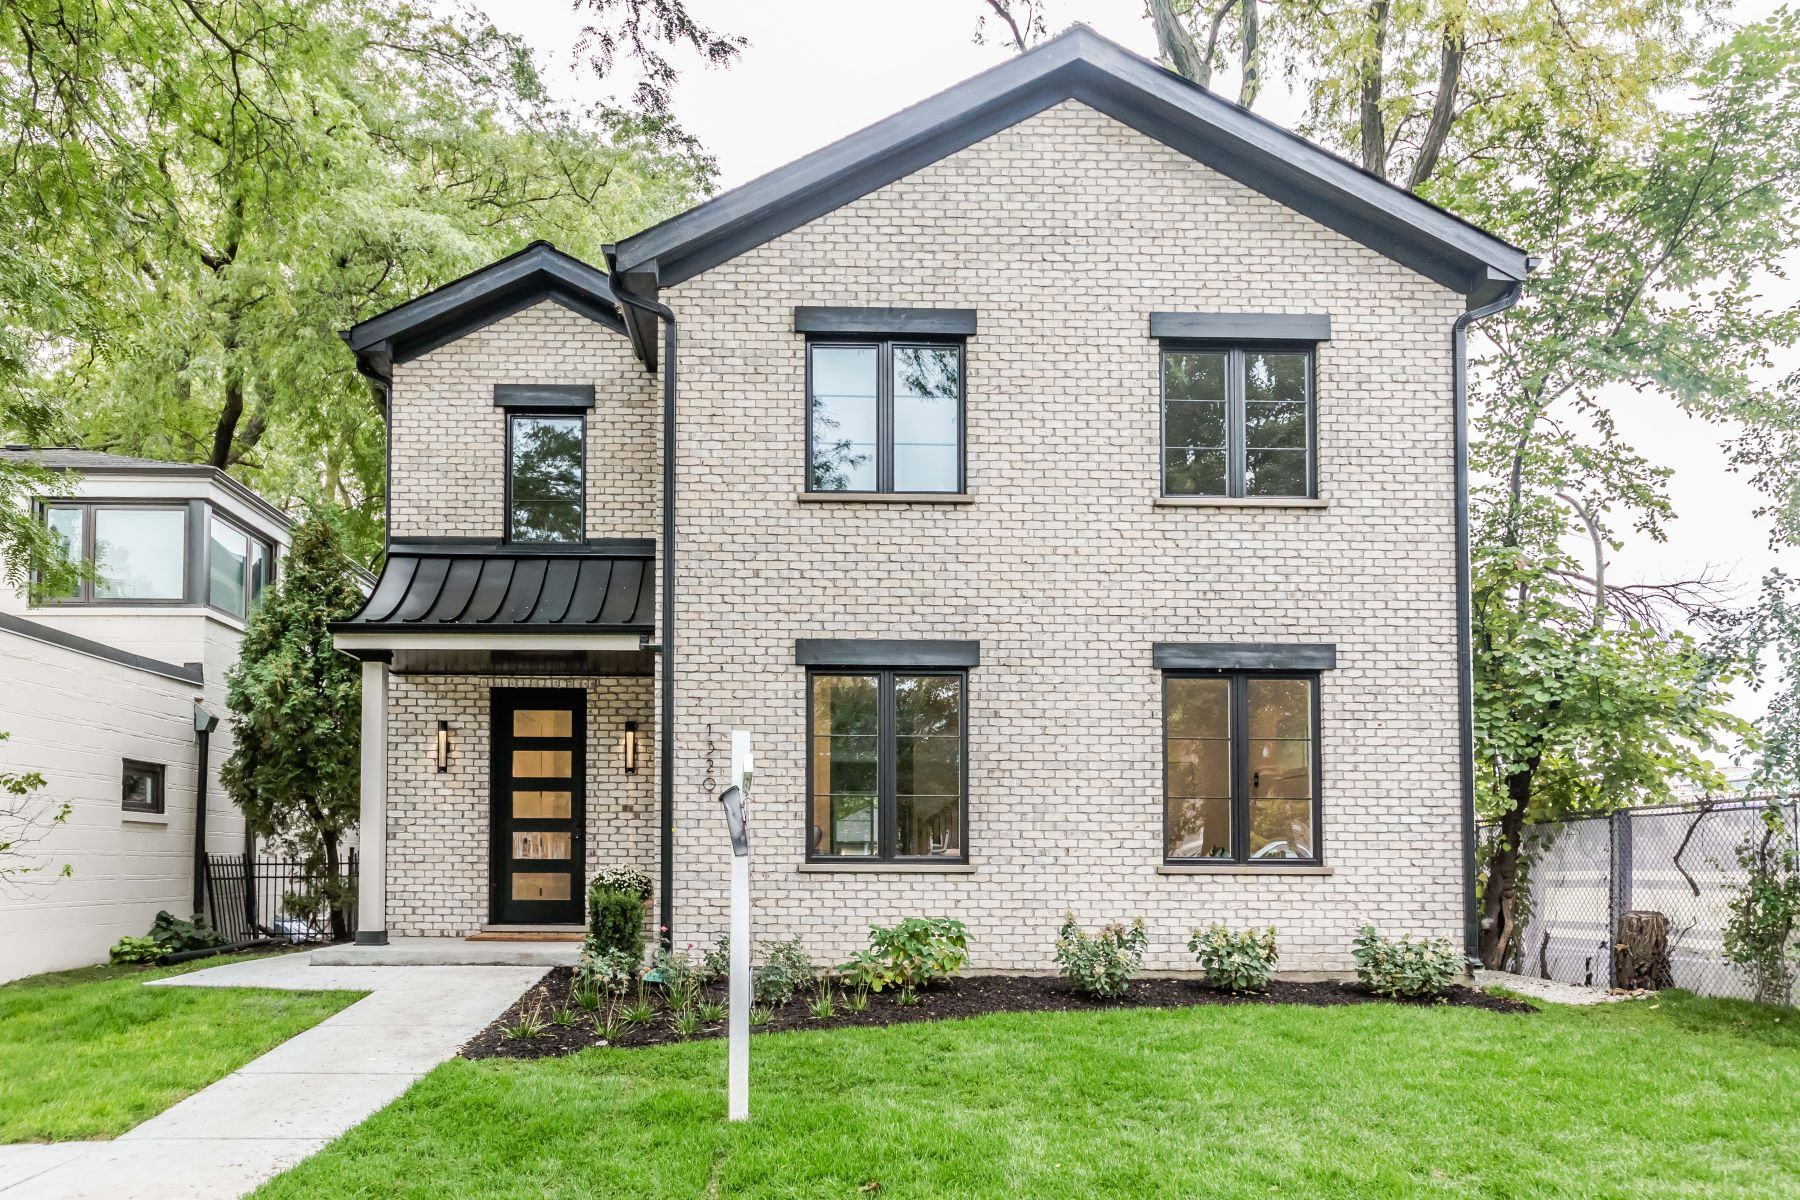 Single Family Home for Active at Impressive And Modern 1320 Jenks Street Evanston, Illinois 60201 United States